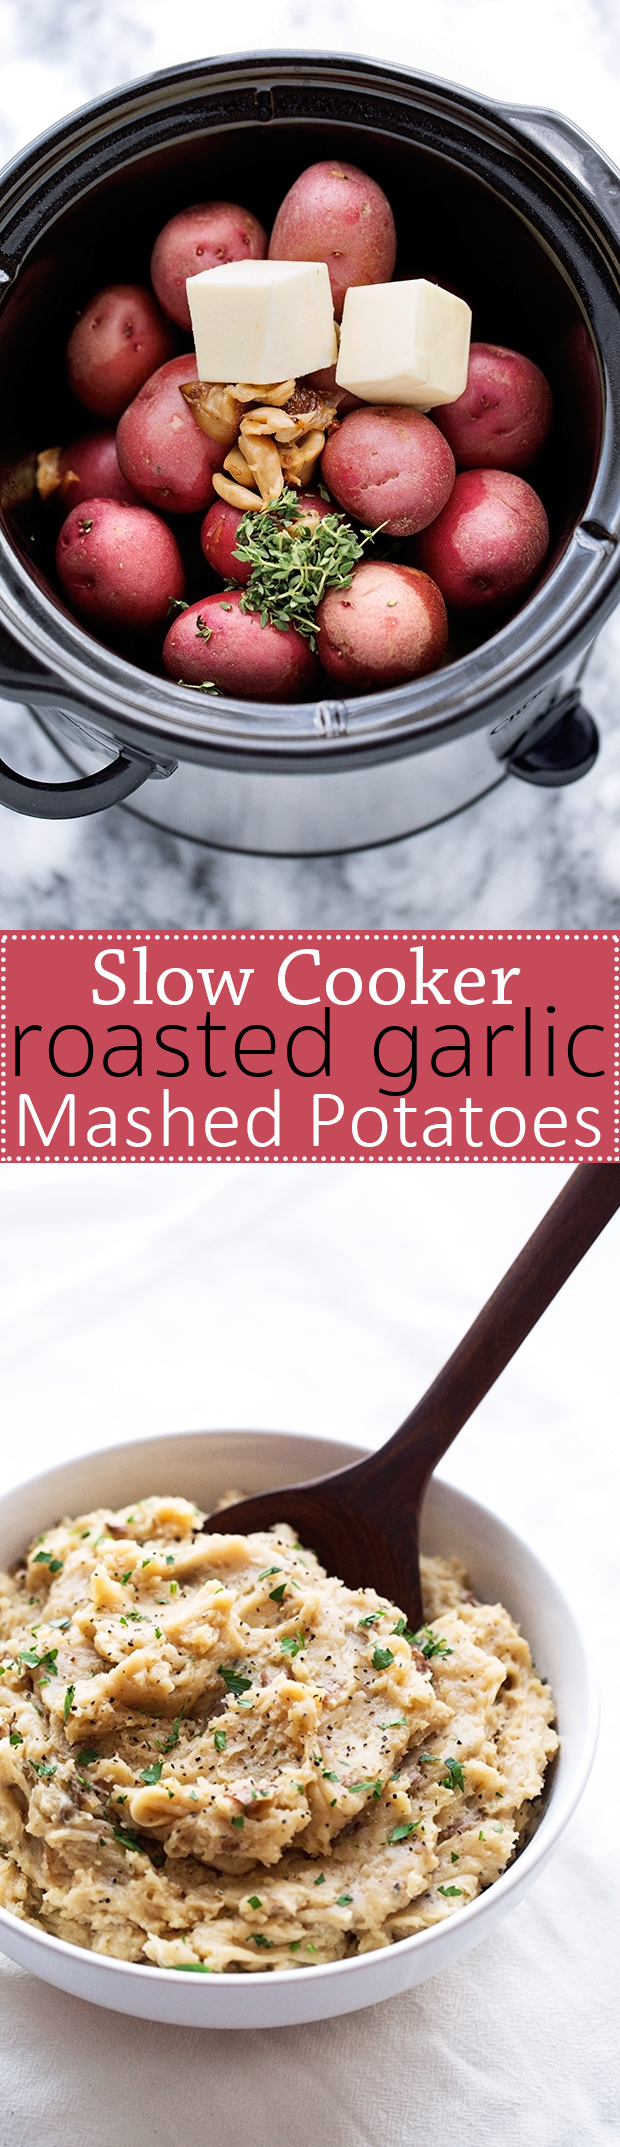 Roasted Garlic Mashed Potatoes - Learn how to make roasted garlic mashed potatoes in the slow cooker! Perfect for Thanksgiving! #slowcooker #mashedpotatoes #crockpot #roastedgarlic   Littlespicejar.com